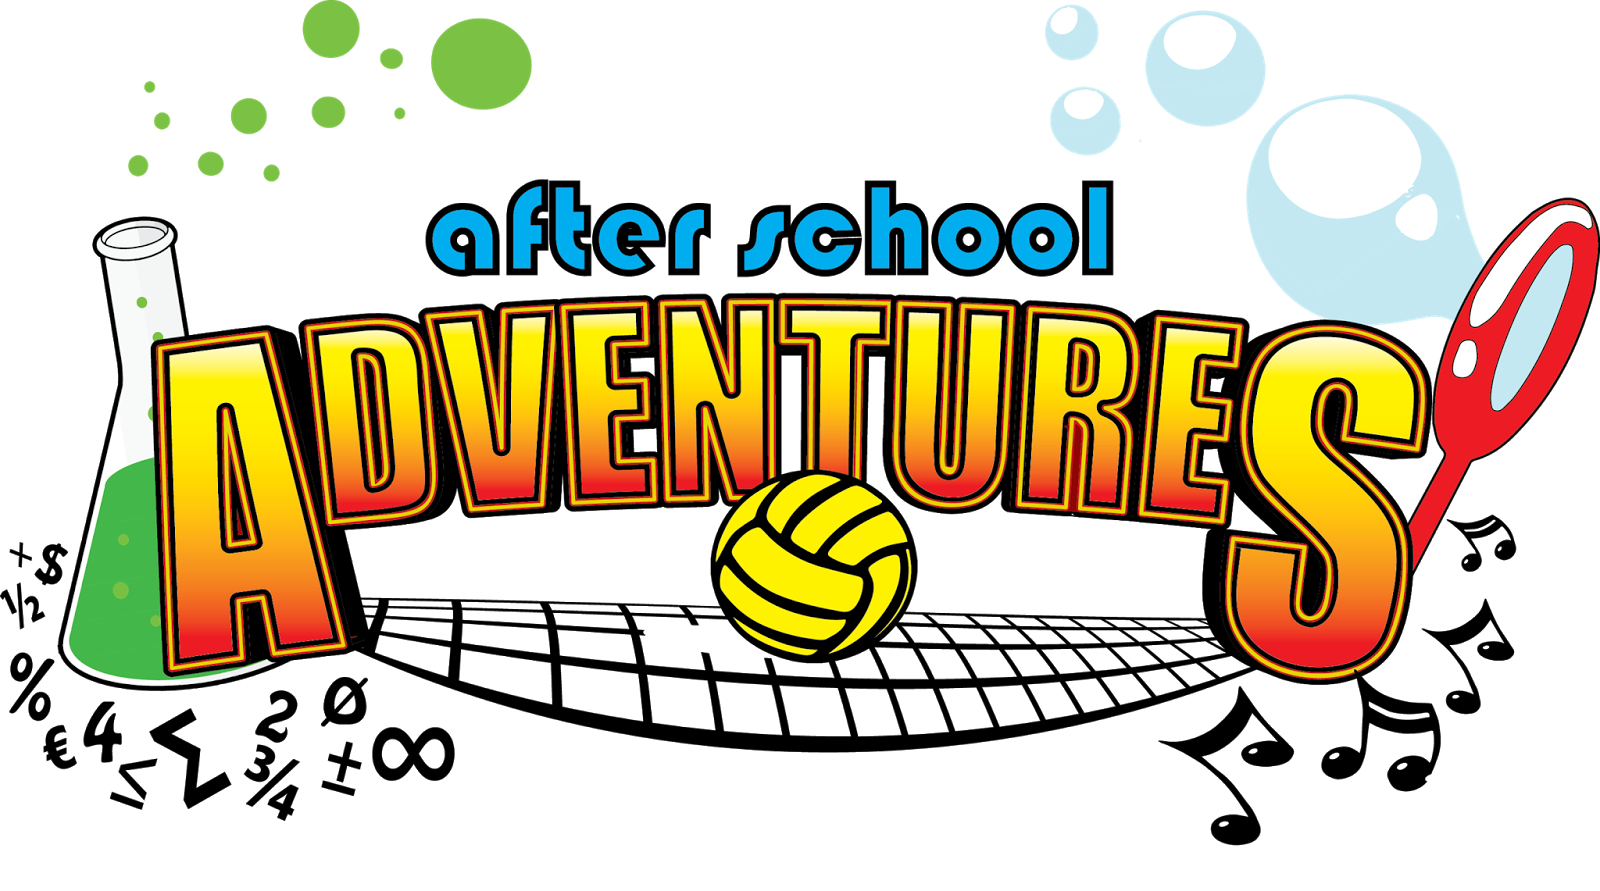 After school care clipart png stock 28+ Collection of After School Clipart | High quality, free cliparts ... png stock